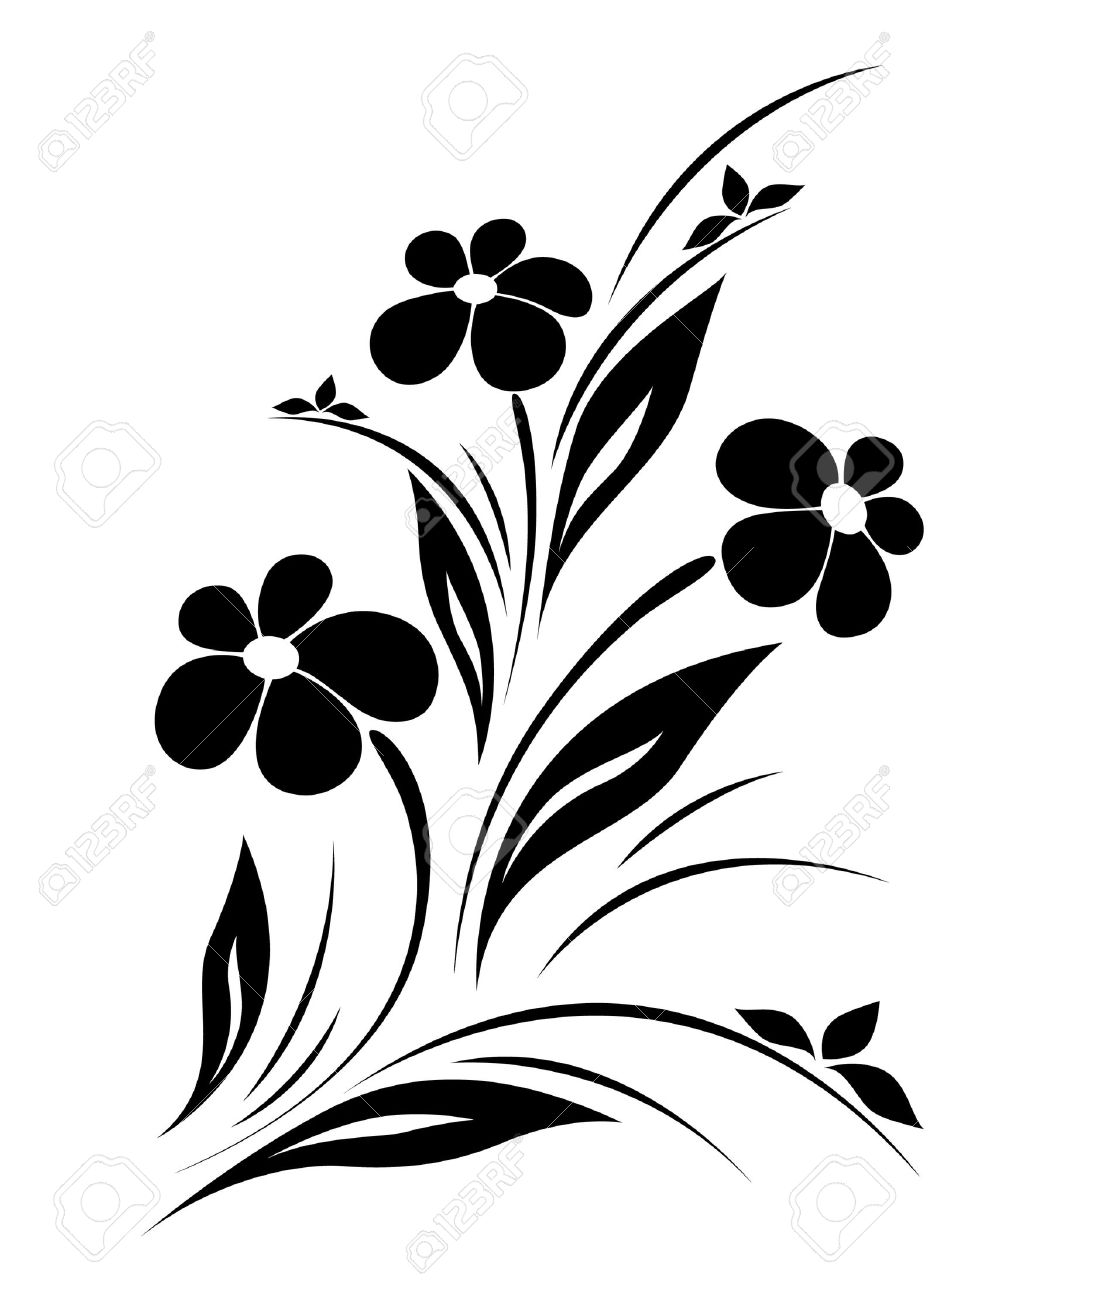 vector flower pattern on white background royalty free cliparts rh 123rf com vector flower pattern black and white vector flower pattern black and white